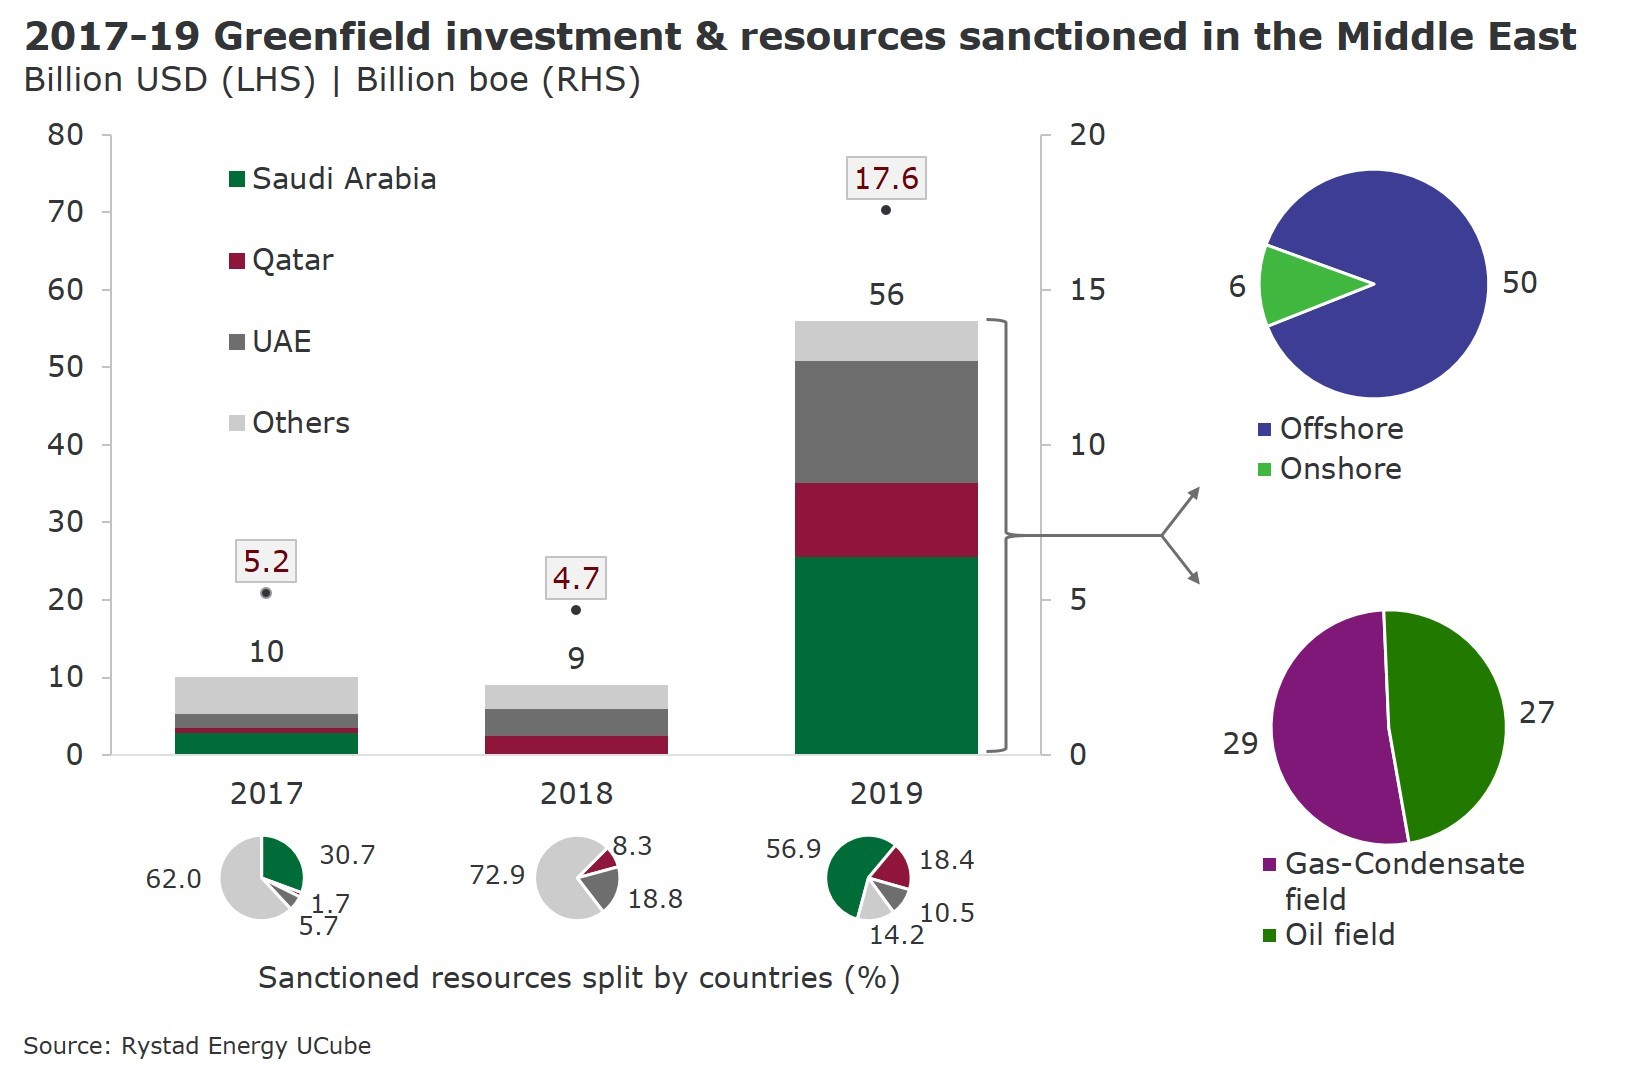 A bar chart showing 2017-2019 Greenfield investment & resources sanctioned in the Middle East. Source: Rystad Energy UCube